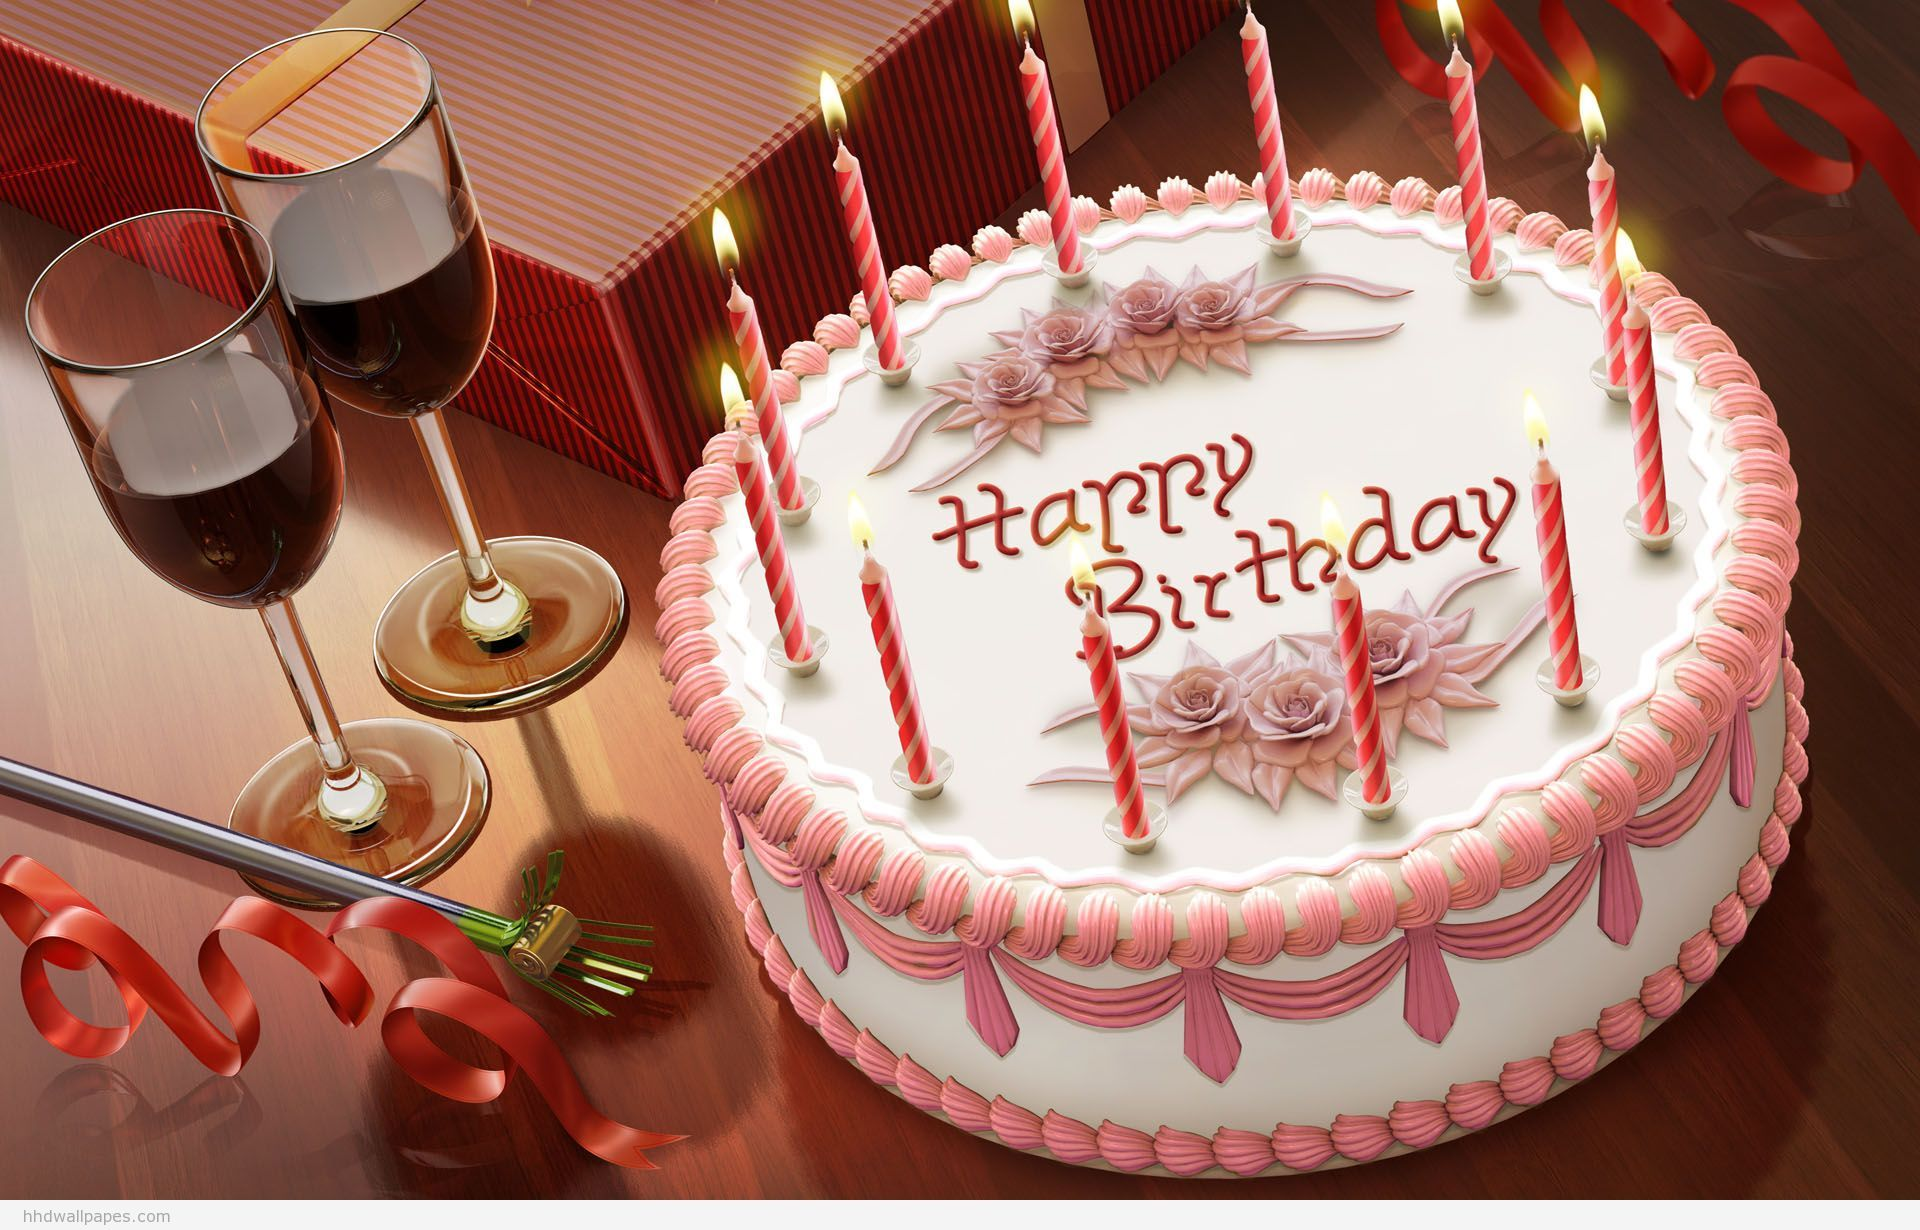 Birthday Wishes Happy Birthday wishes images and pictures with – Pictures of Birthday Greetings